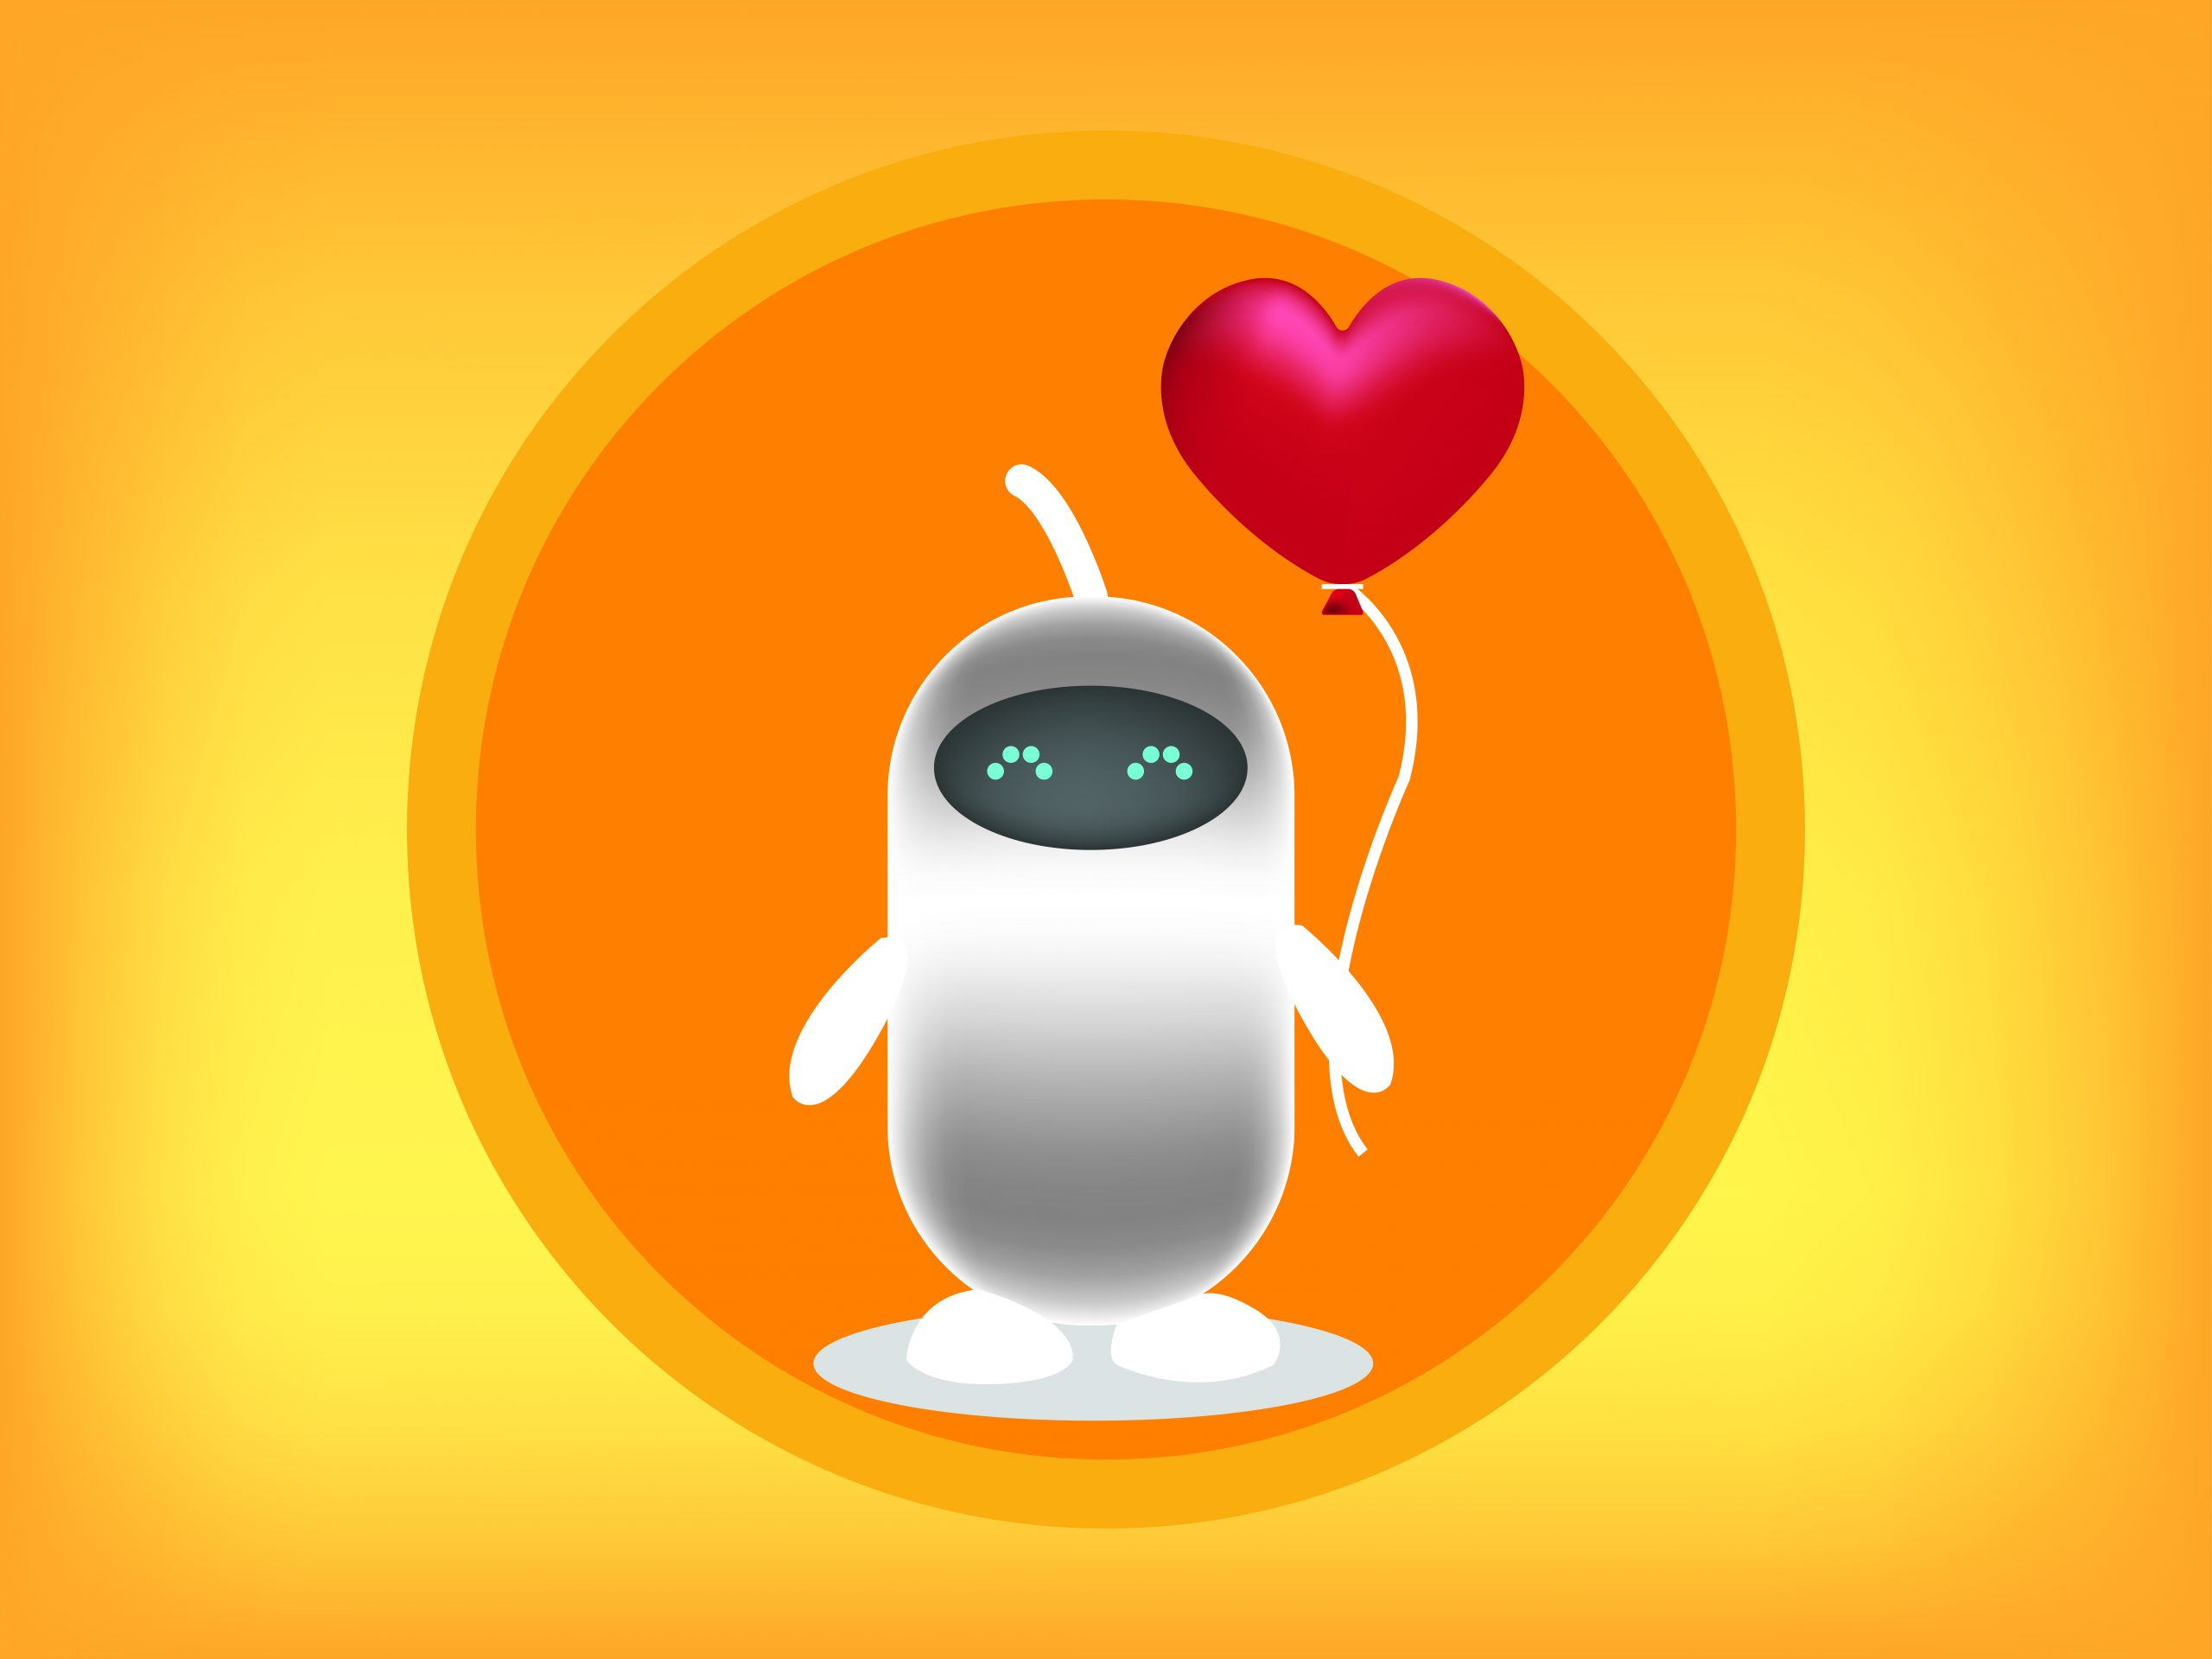 Animated Robot holding heart shape balloon